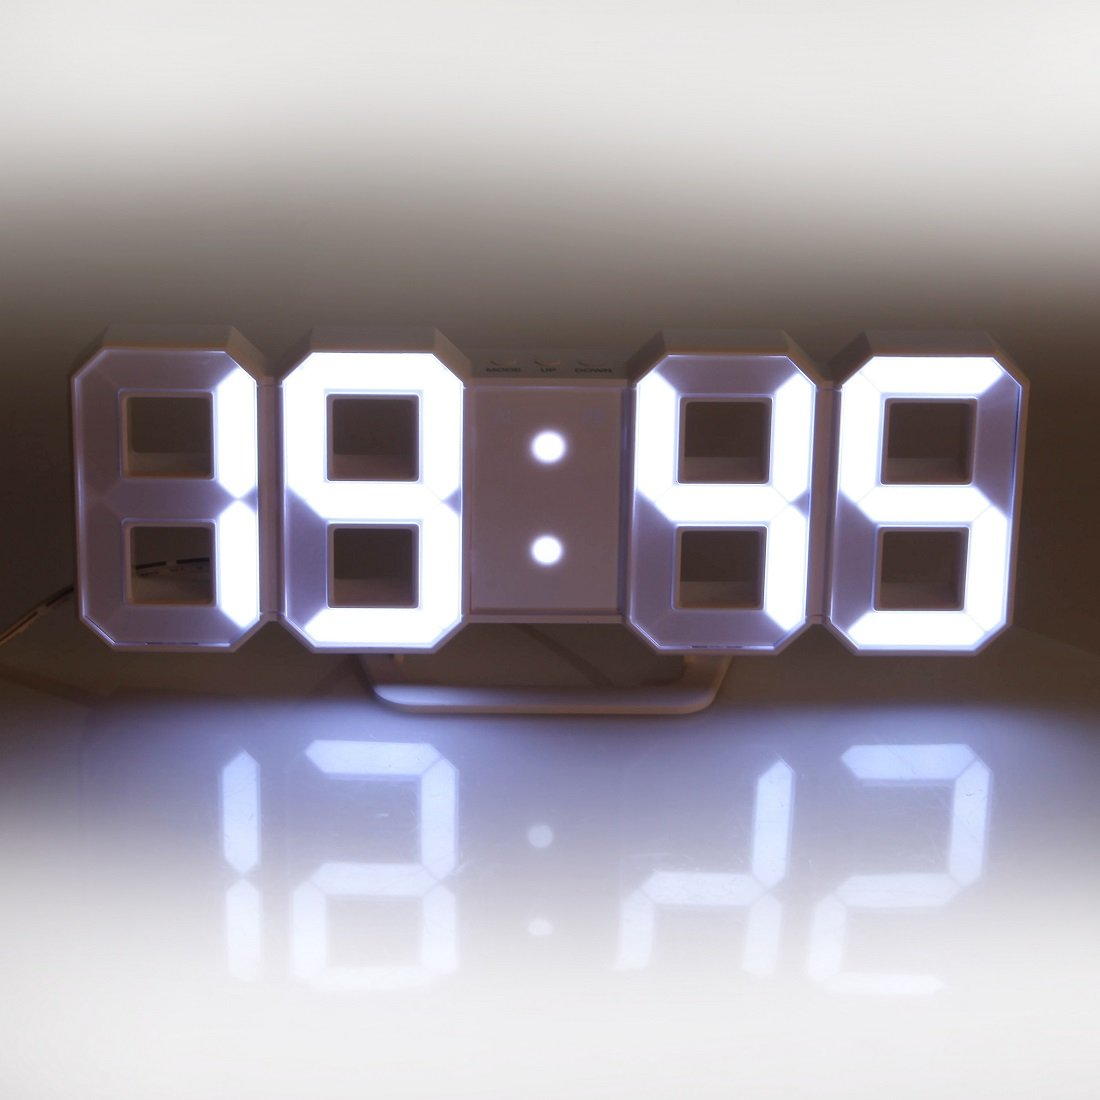 Best Of Digital Wall Clock with Light